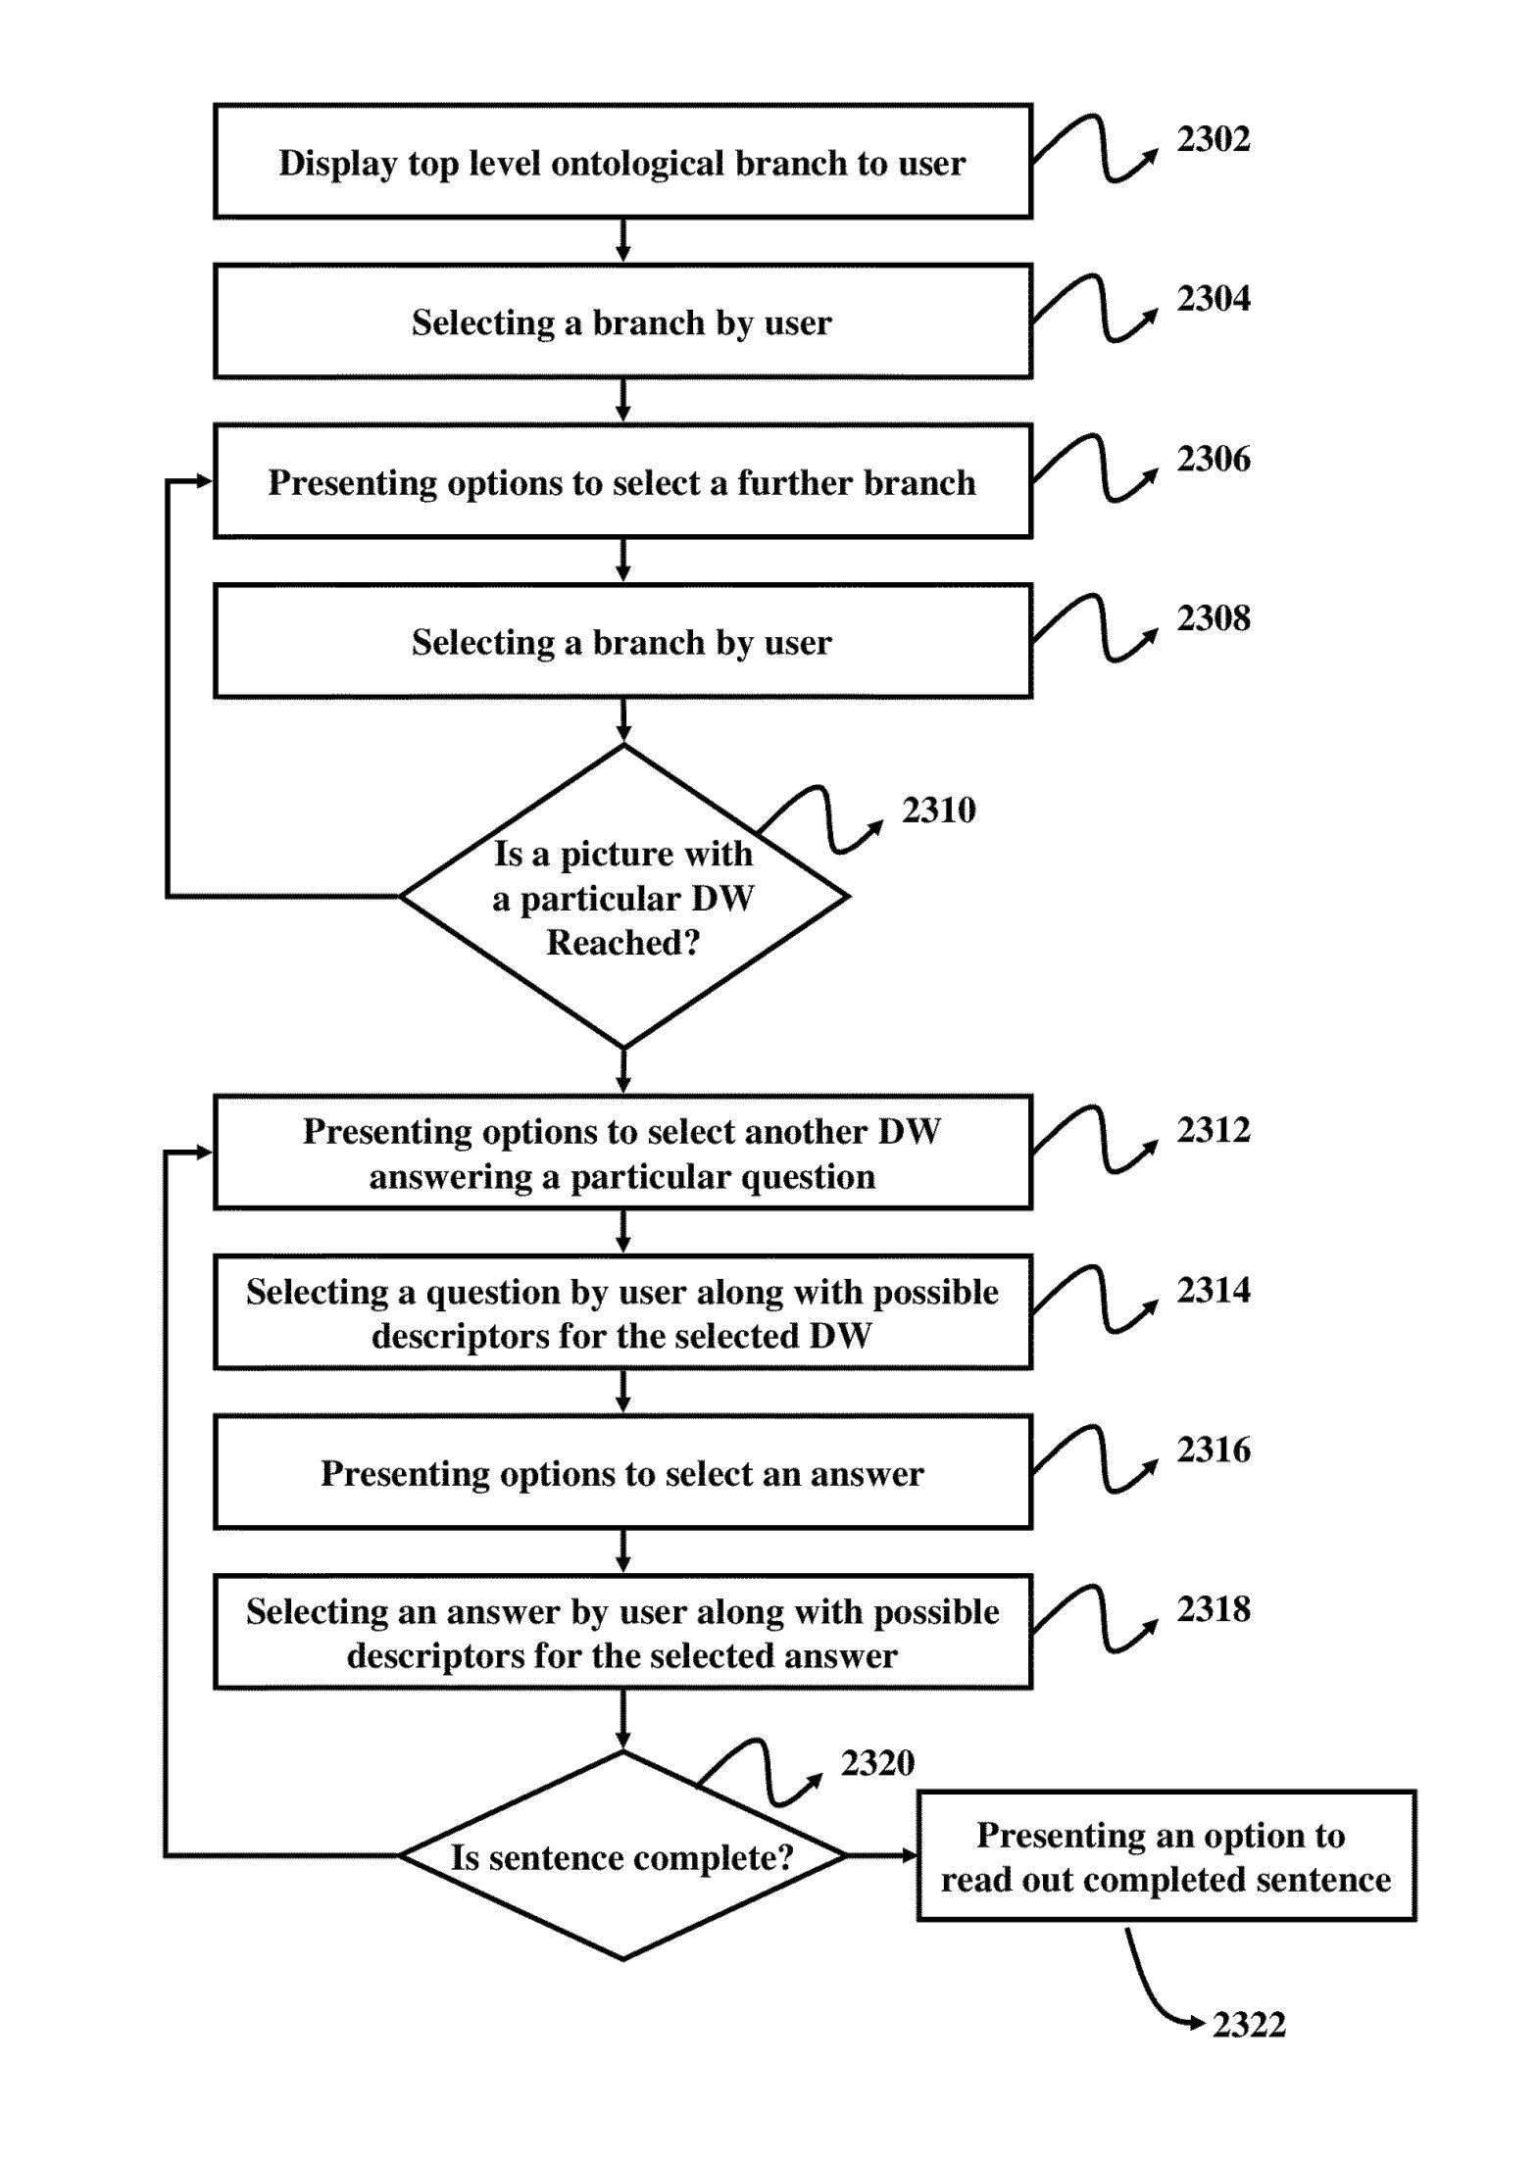 patent specification template - sample provisional patent application template